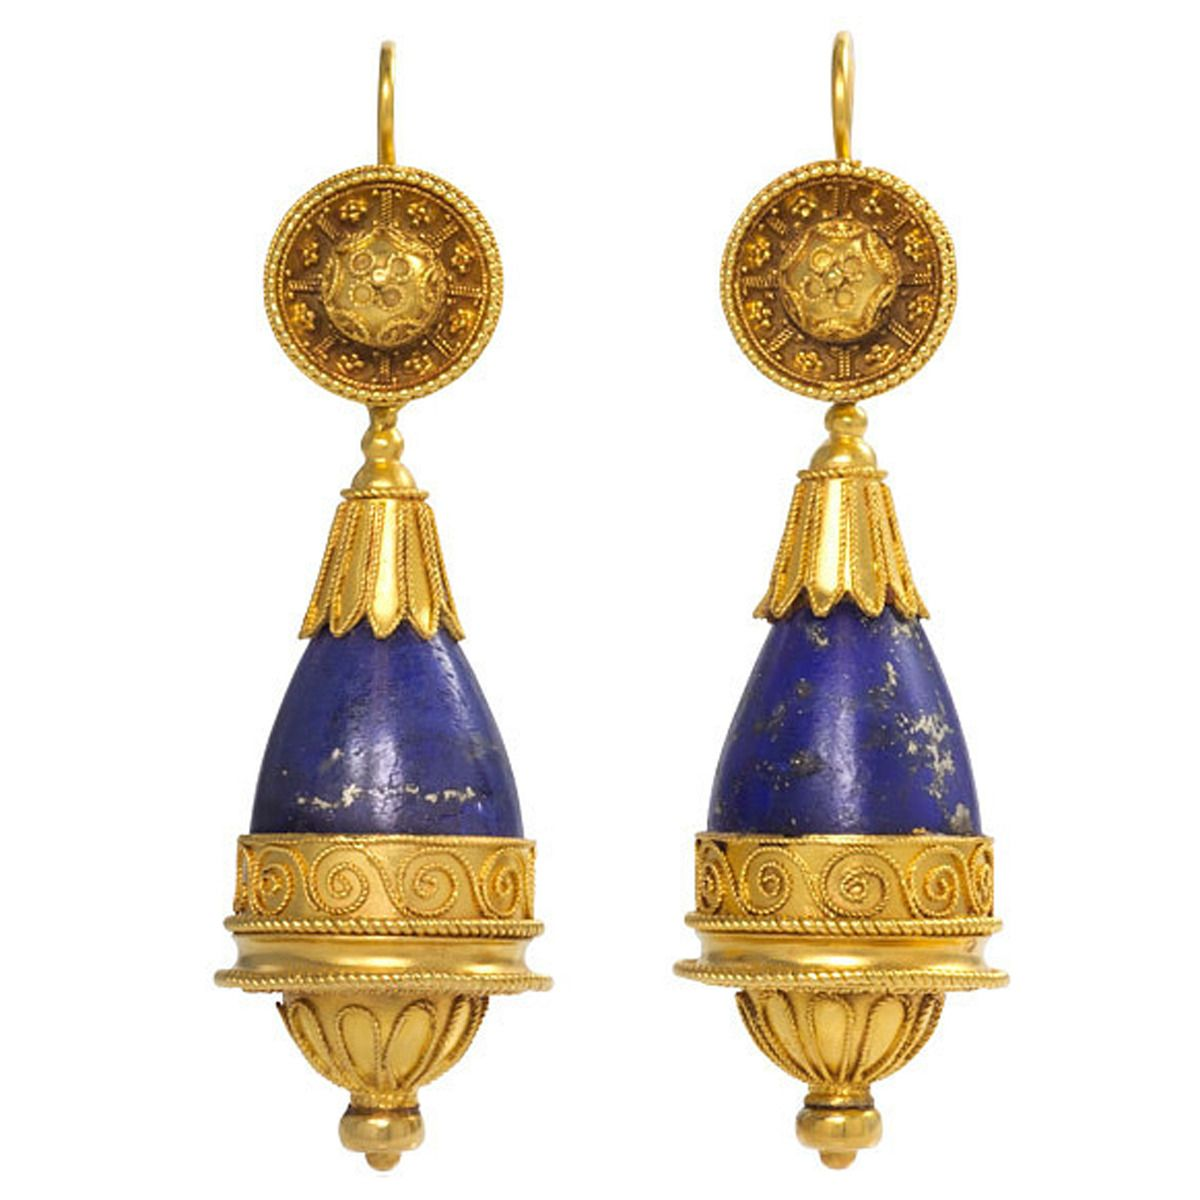 Antique Lapis Gold Etruscan Style Earrings A Pair Of And In The With Pendulum Shaped Pendants 18k C 1870